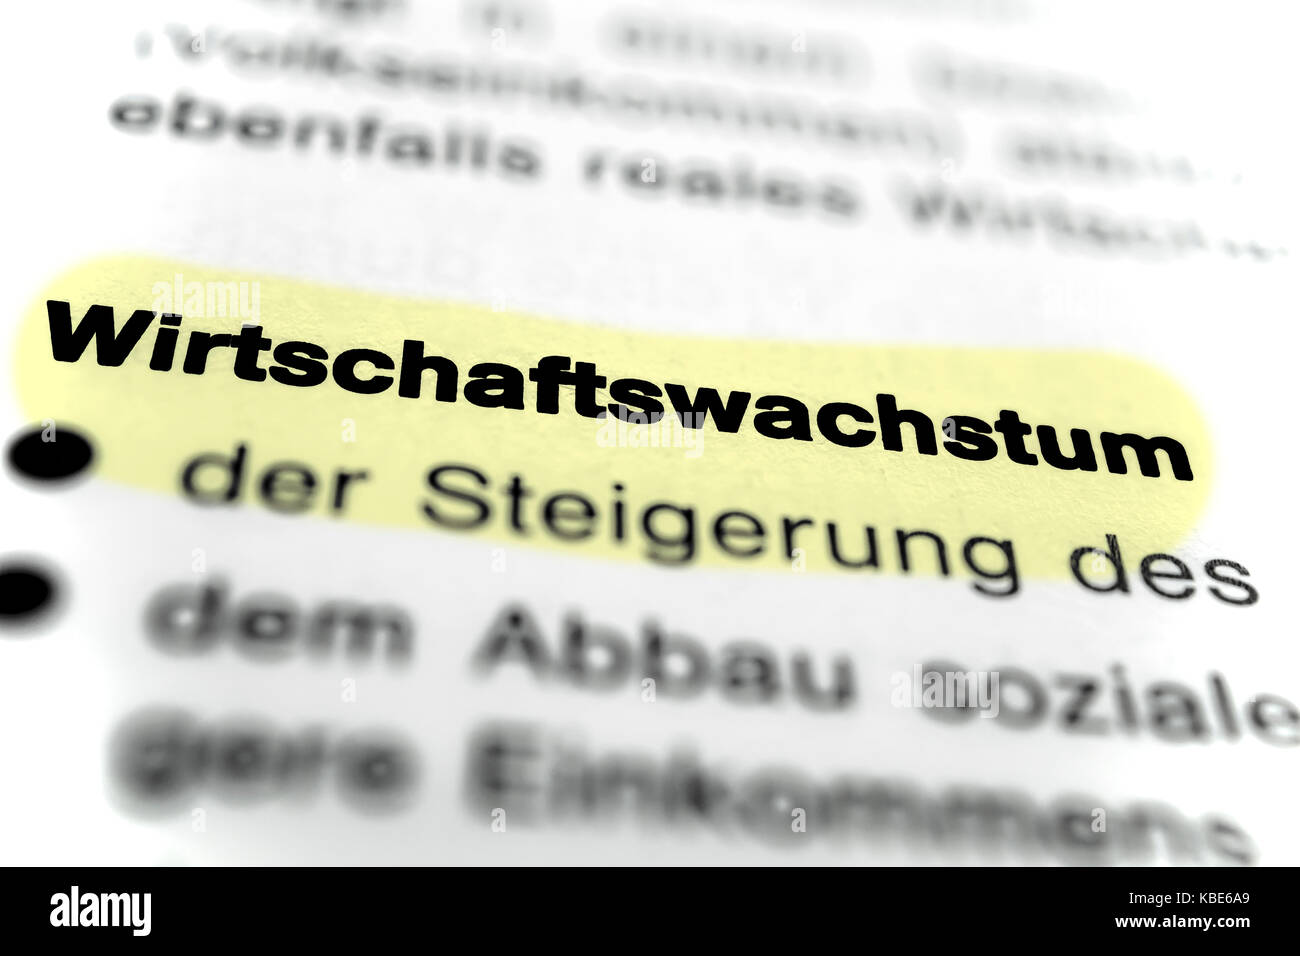 Text on page Economic Growth highlight horizontal closeup Stock Photo